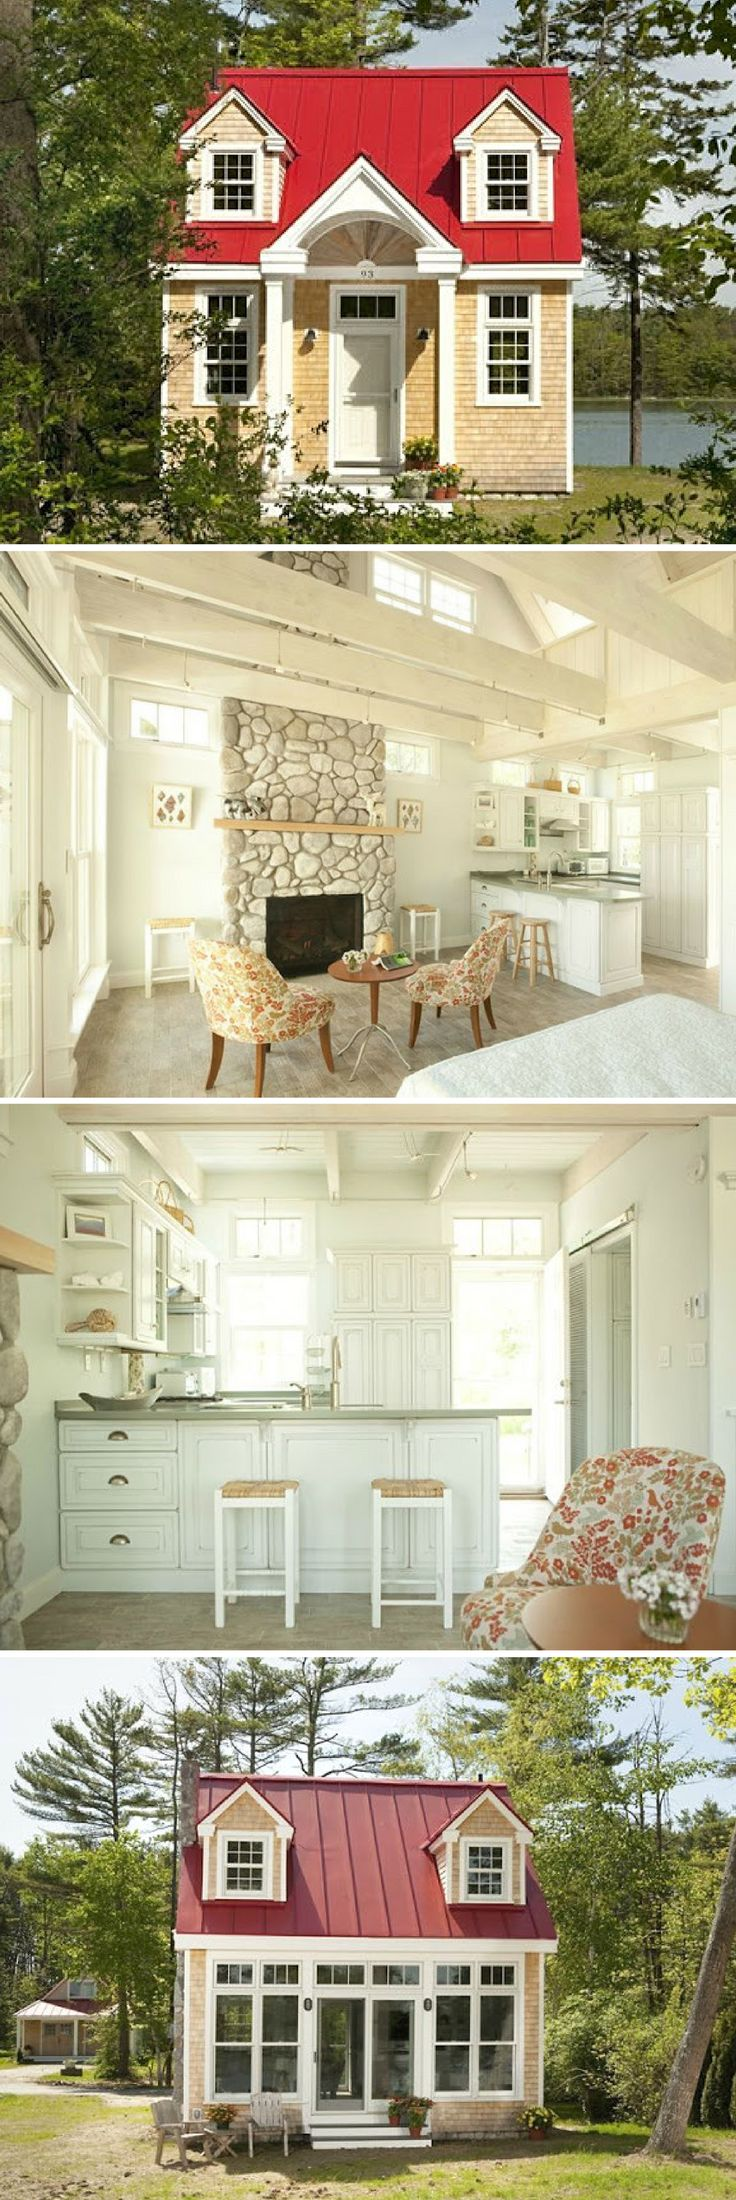 Best  Guest House Cottage Ideas On Pinterest - Homes interior design